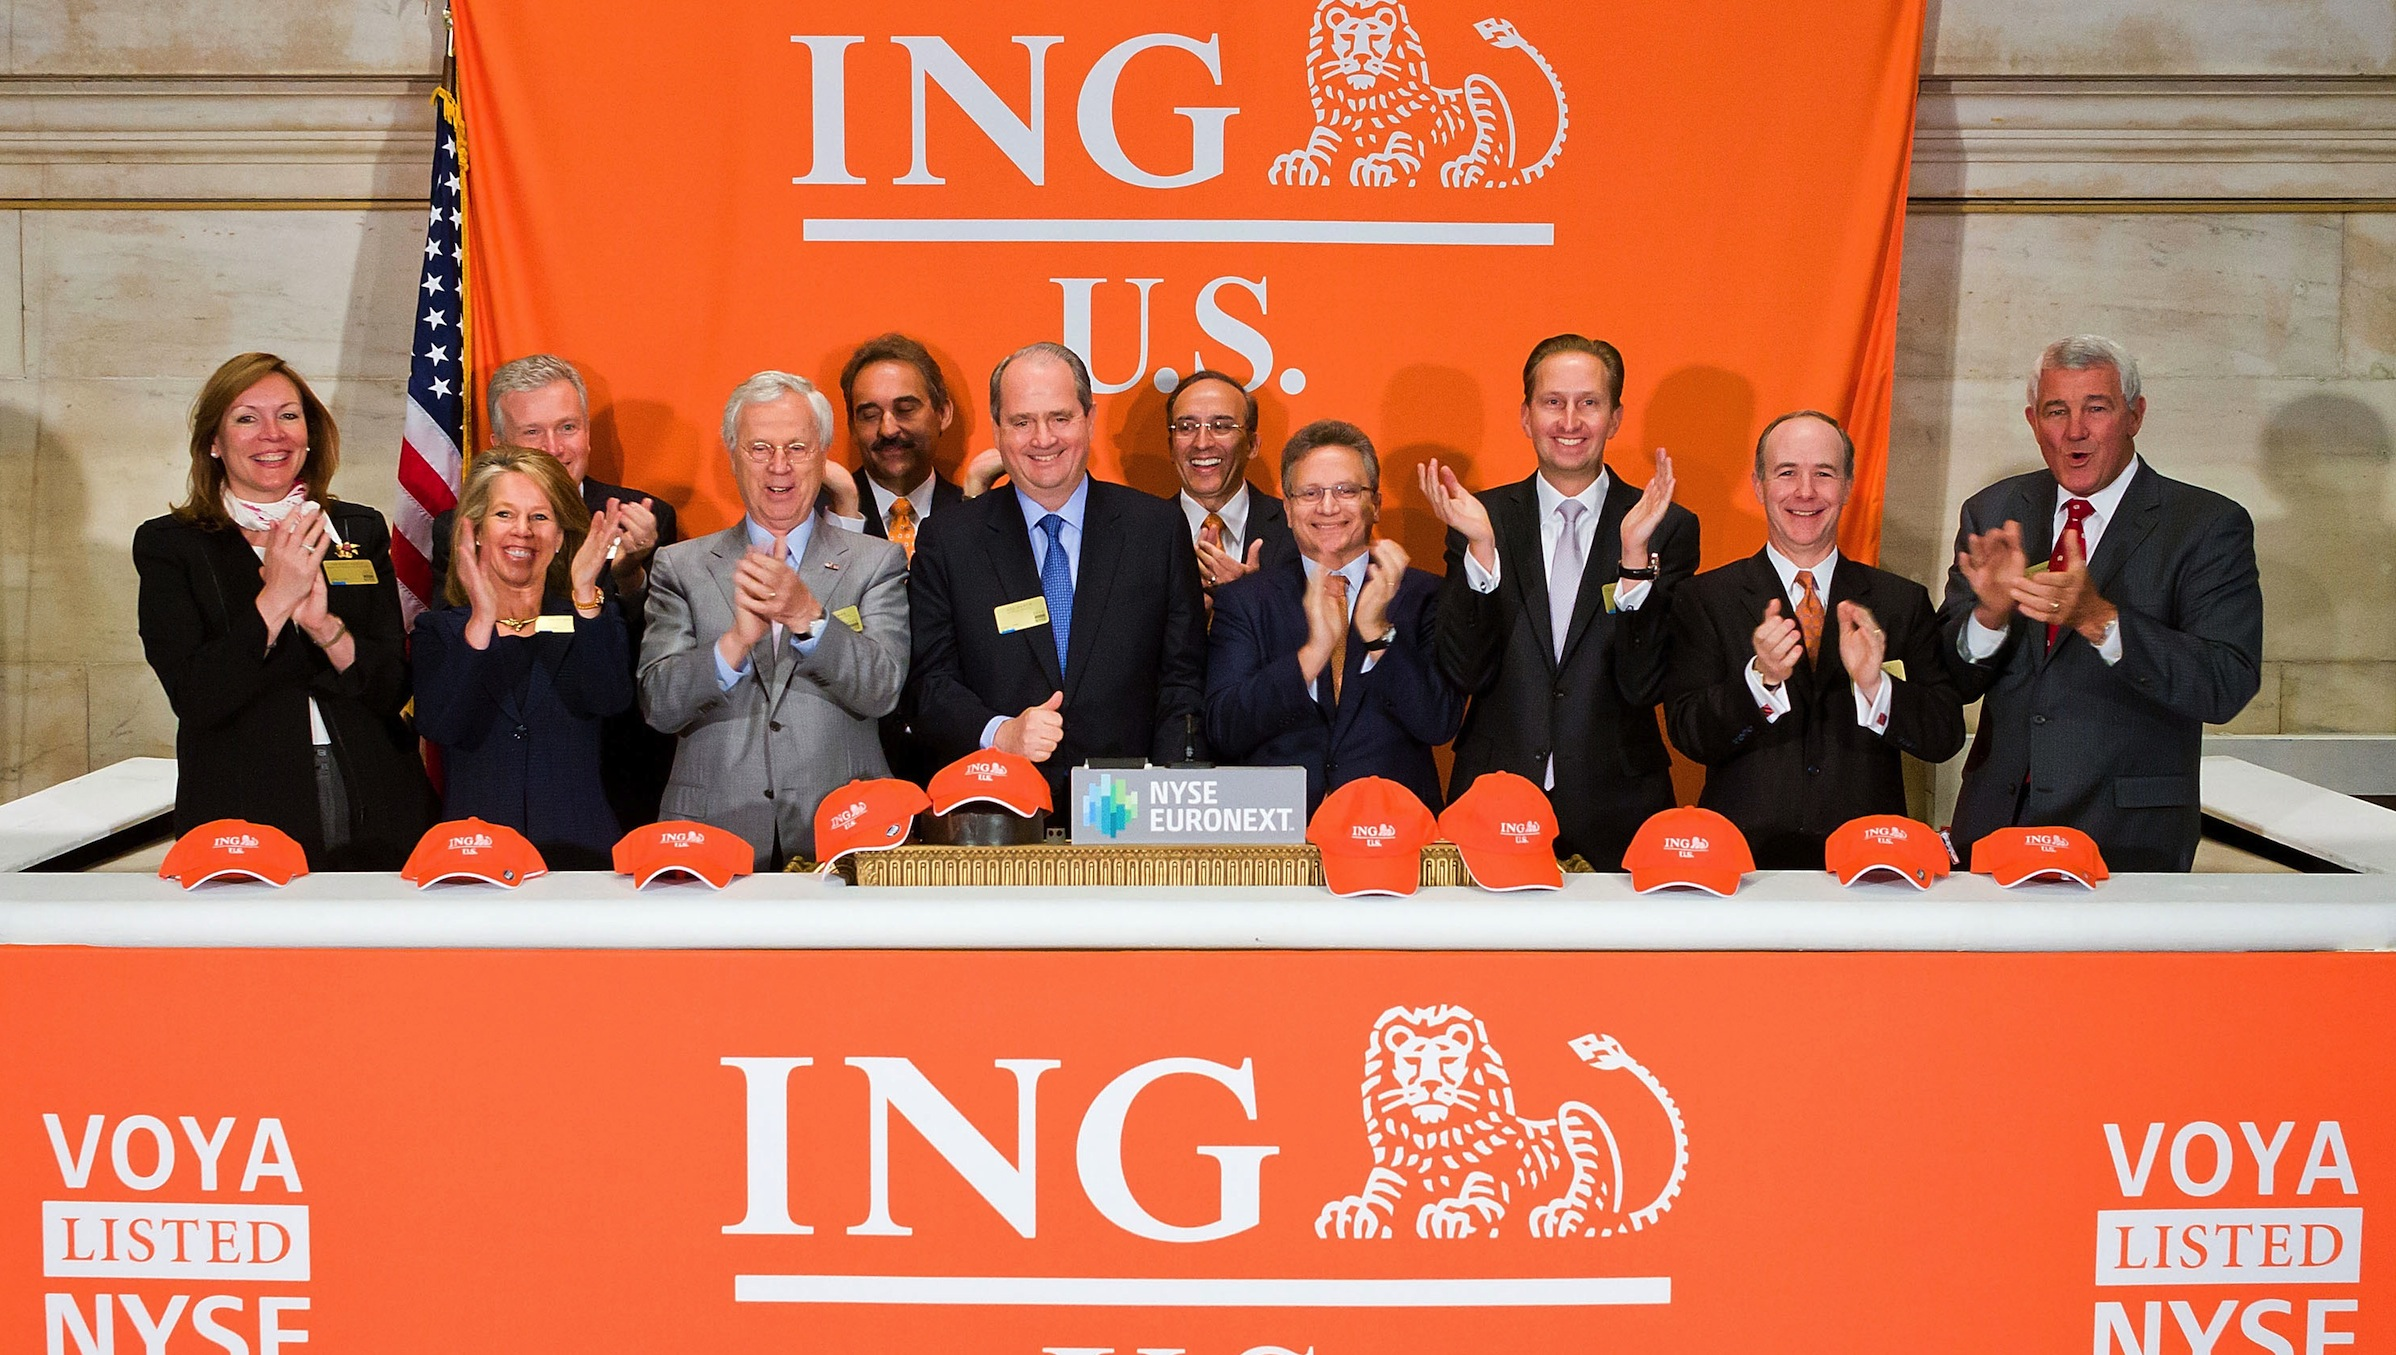 NEW YORK, NY – MAY 2:  Rodney O. Martin, Jr.  Chairman and CEO of ING U.S. rings the Opening Bell in celebration of their IPO at the New York Stock Exchange on May 2, 2013 in New York City.  (Photo by Ben Hider/NYSE Euronext)